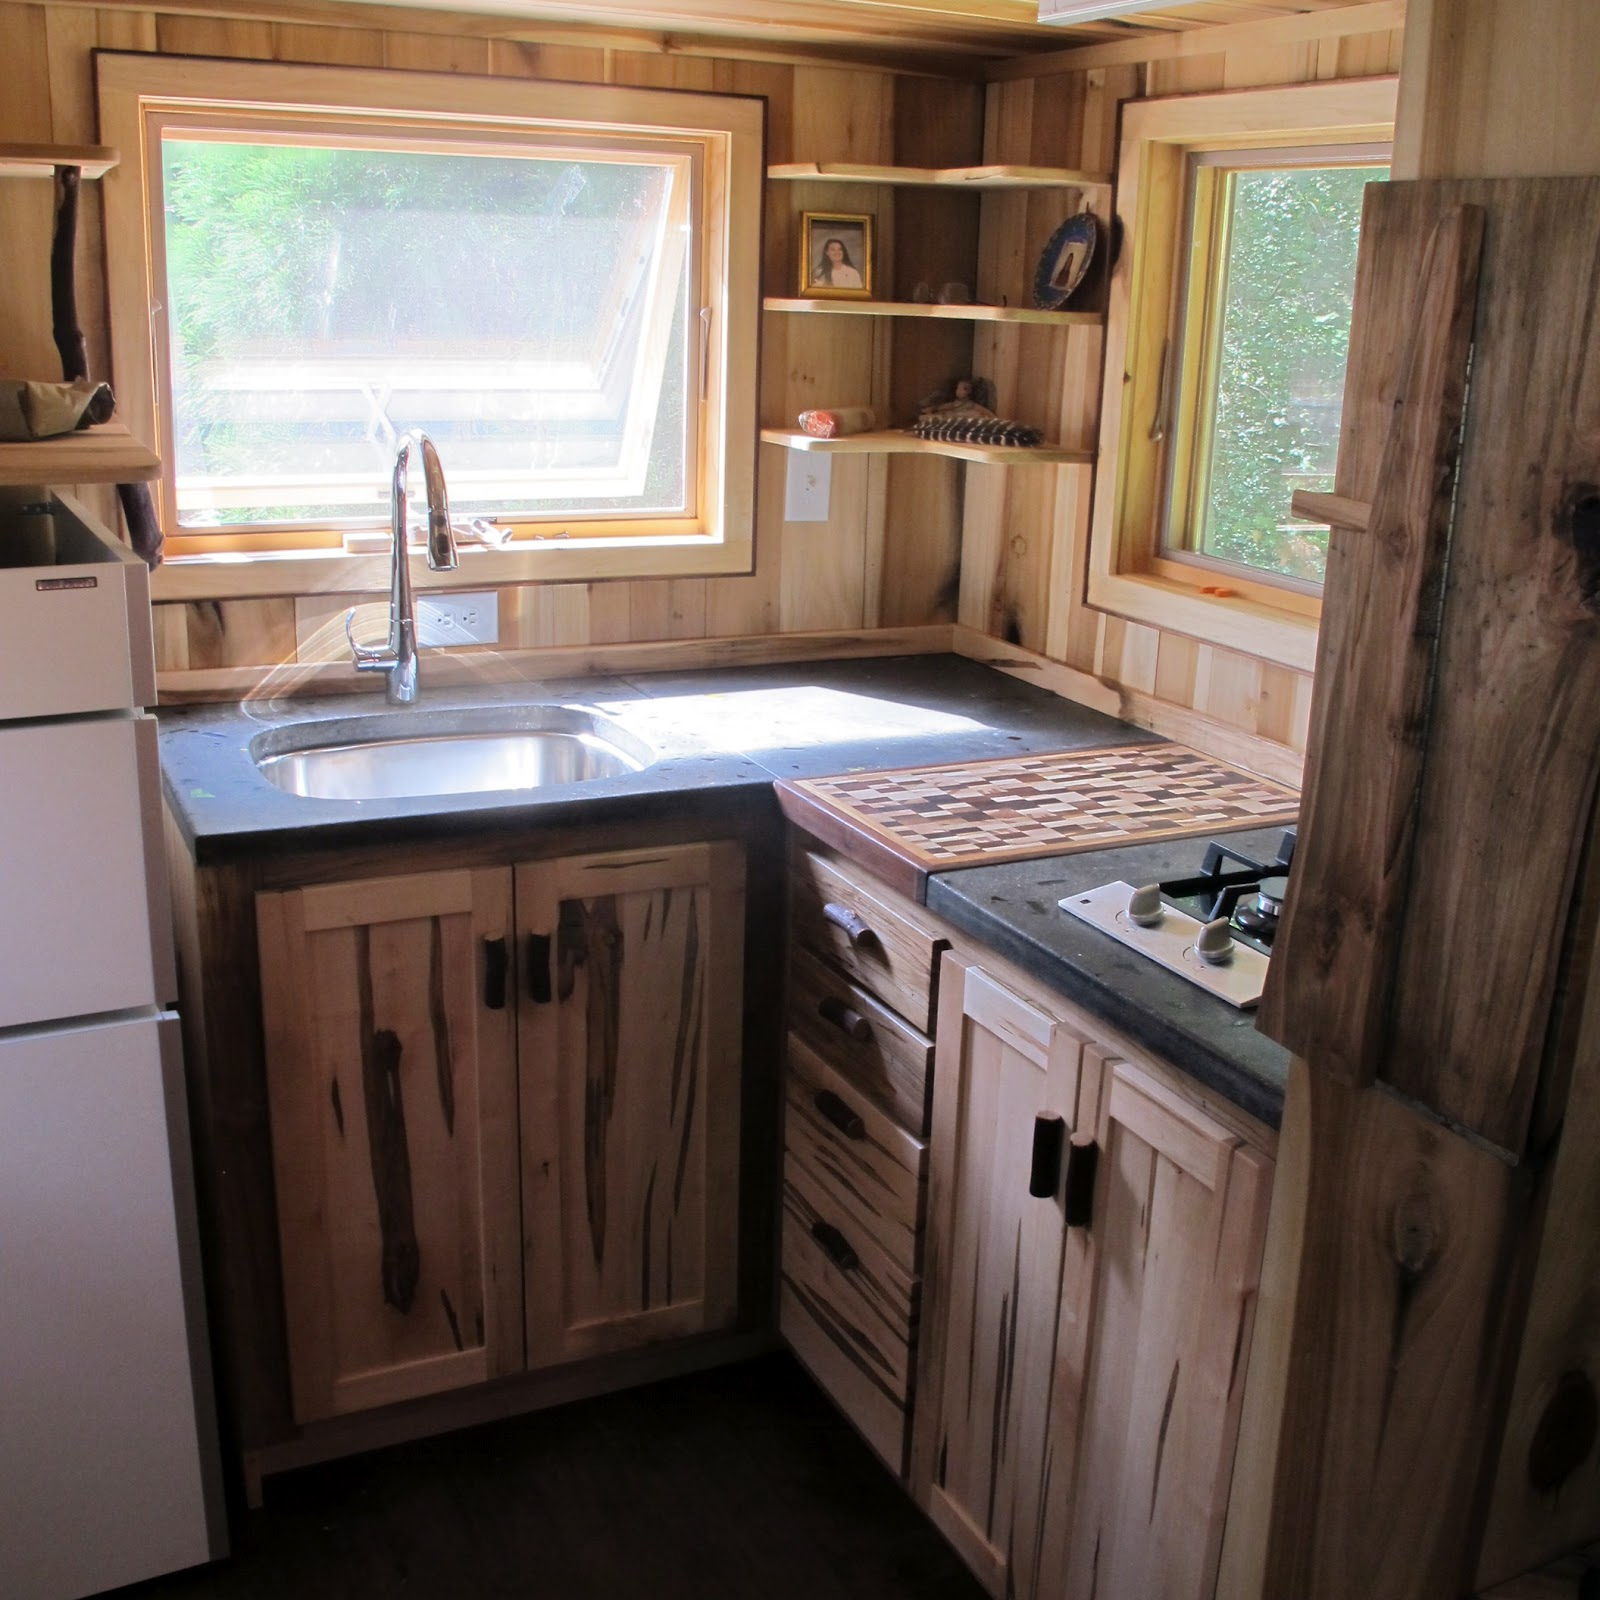 Small Kitchen Area Owl Creek Happenings Tumbleweed Traveling